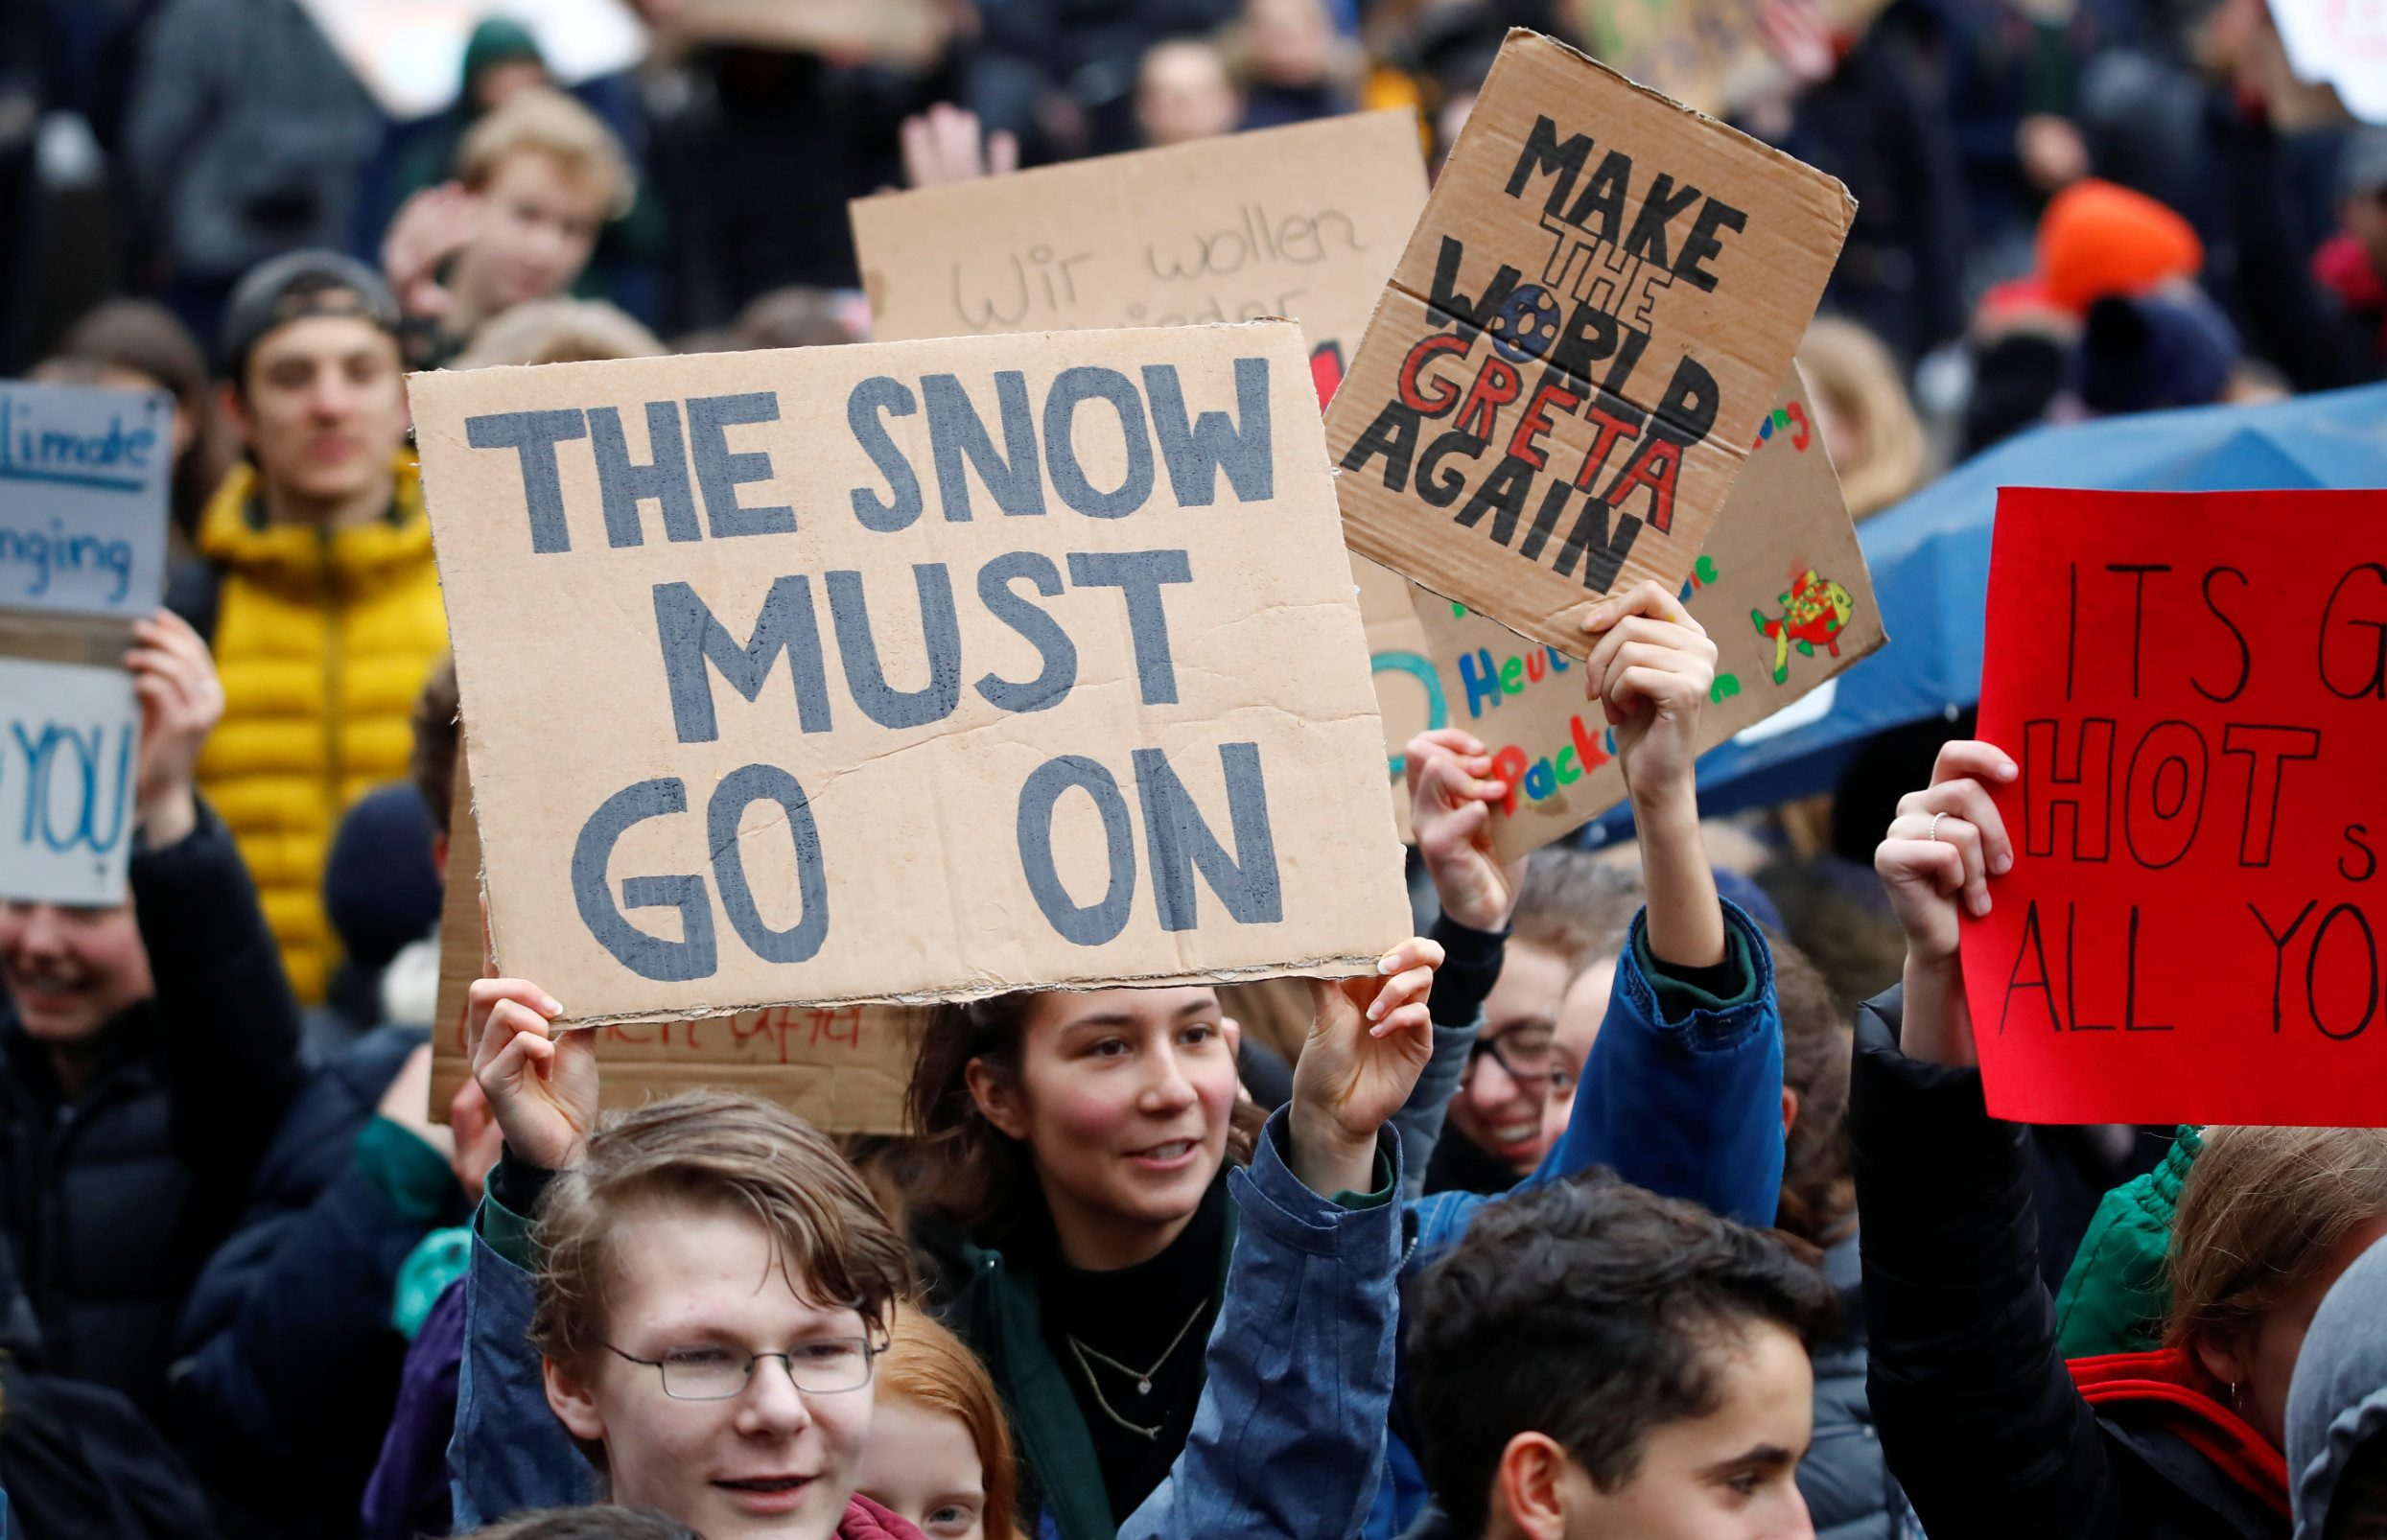 Students hold placards to support Swedish environmental campaigner Greta Thunberg during a strike from school demanding action on climate change at the town hall square of Duesseldorf, Germany, March 15, 2019.  REUTERS/Wolfgang Rattay